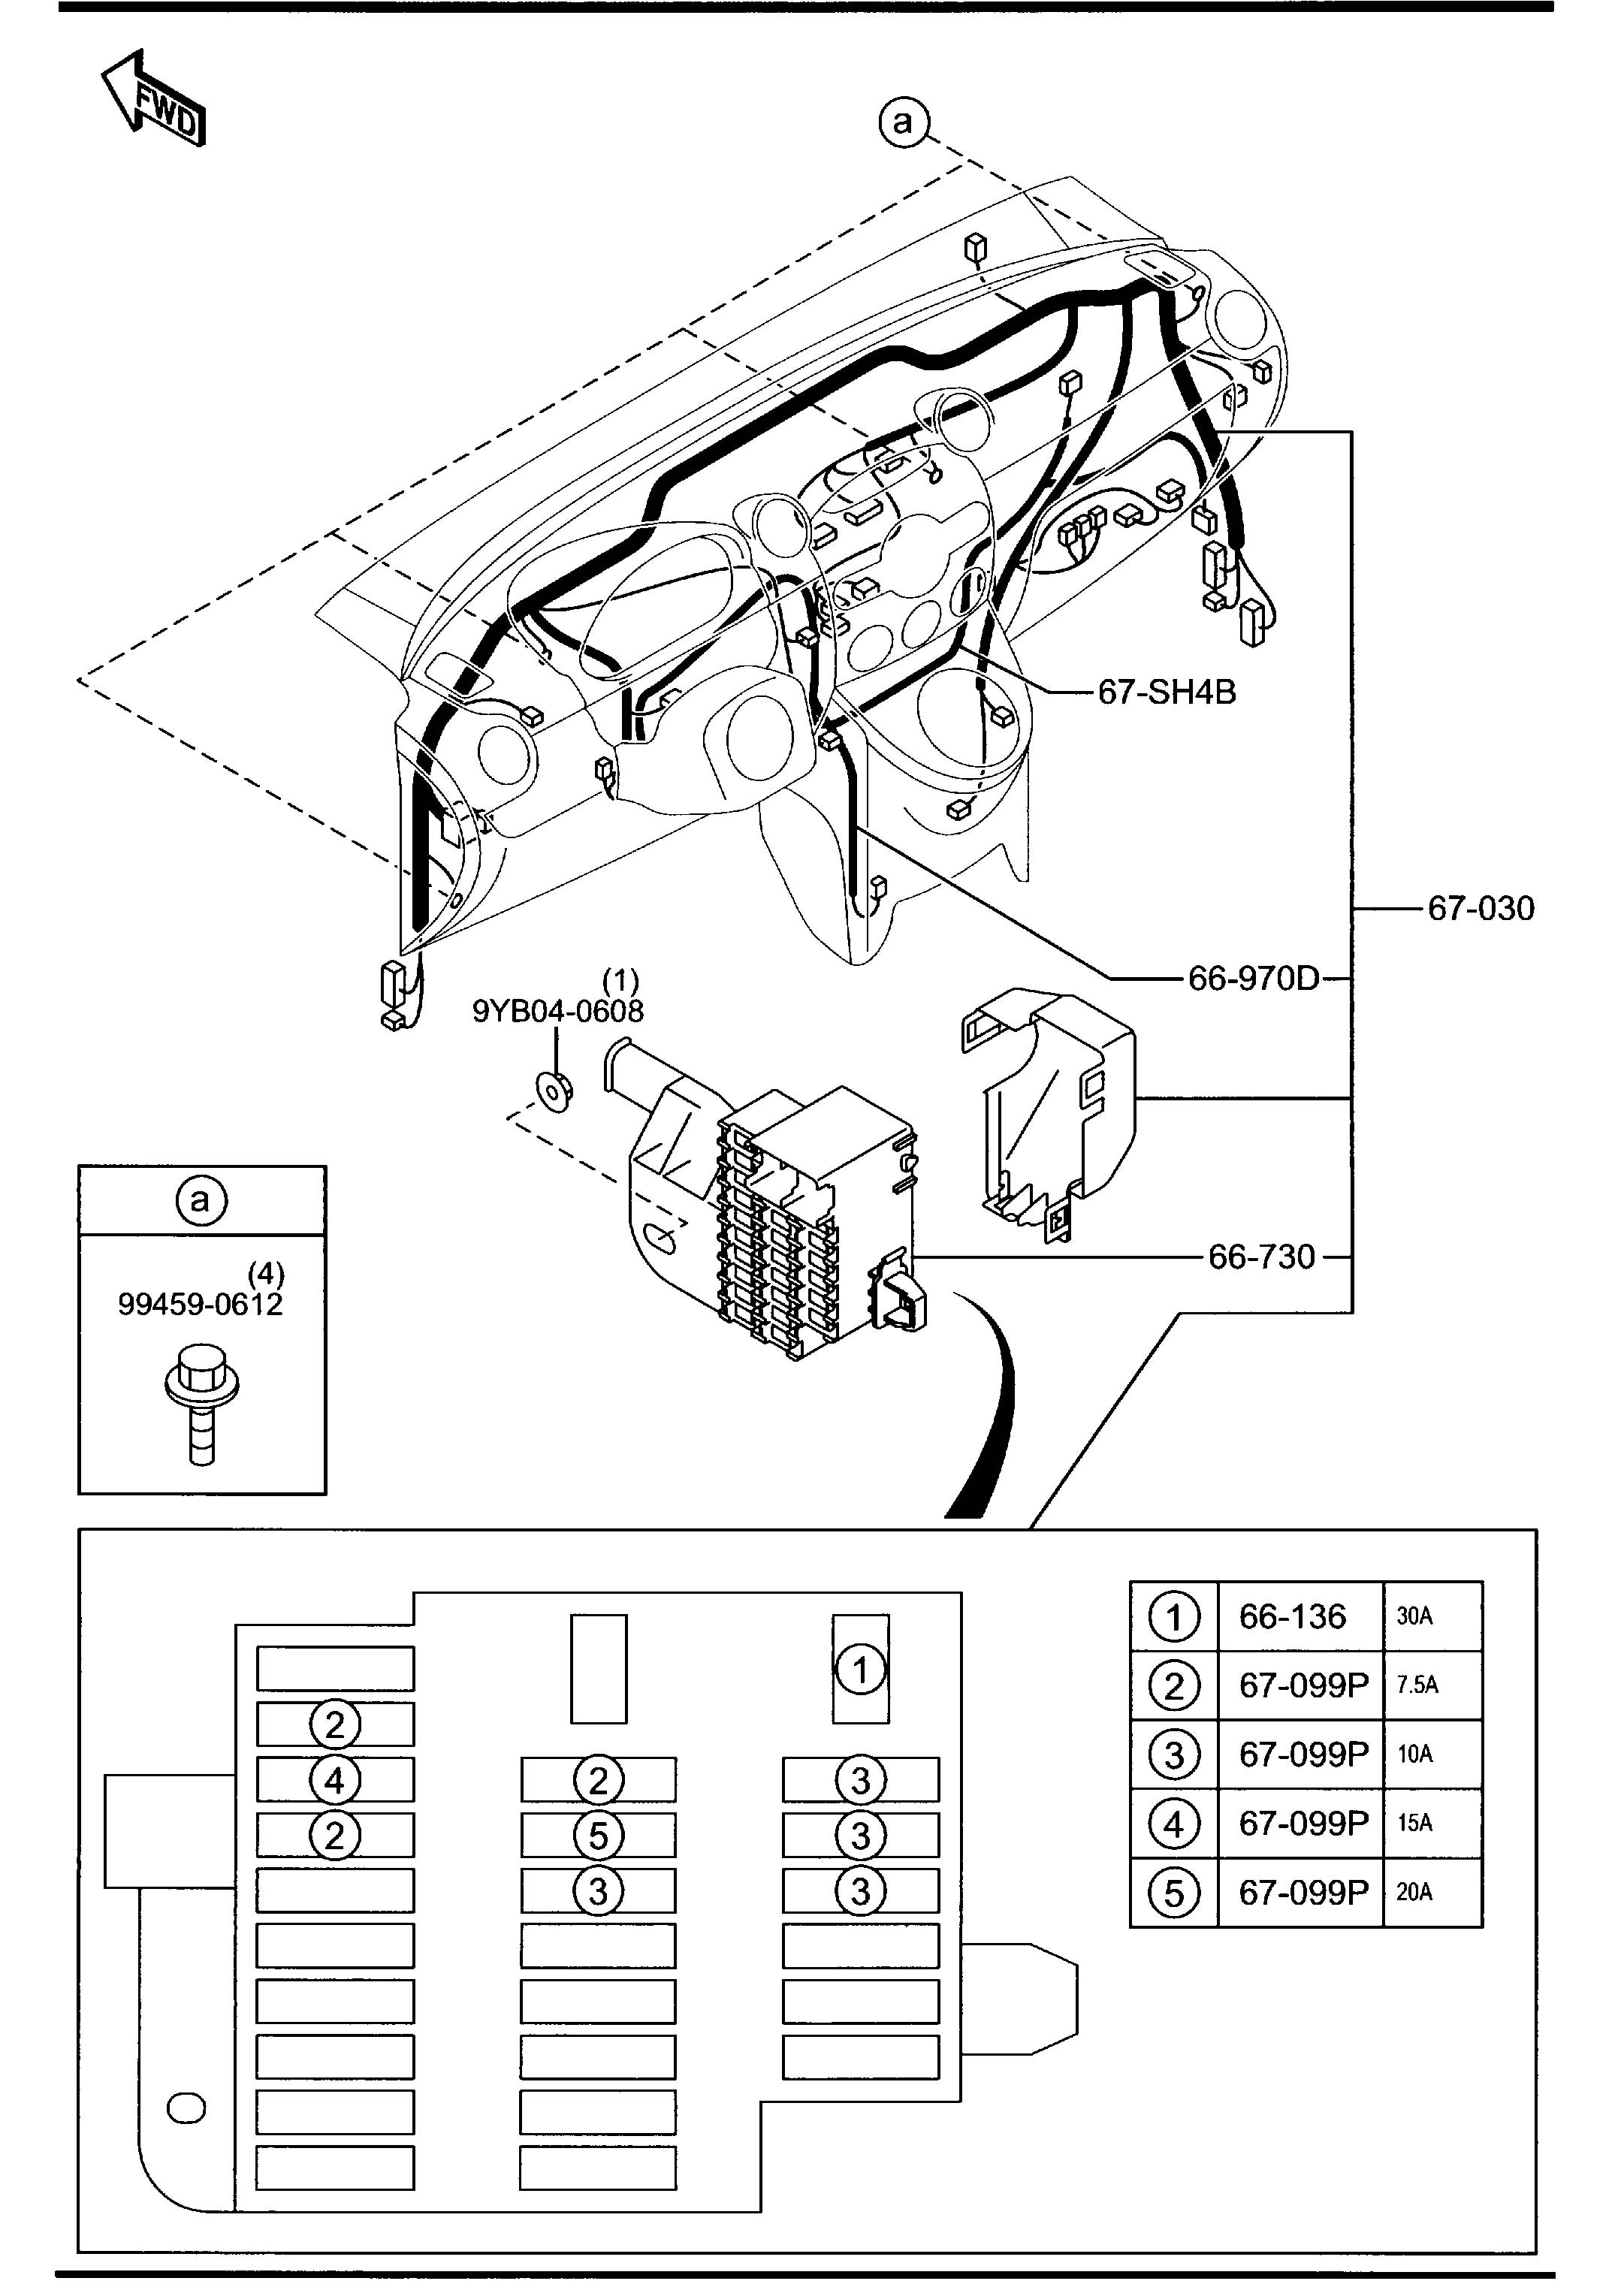 2003 ford ranger door panel parts diagram html